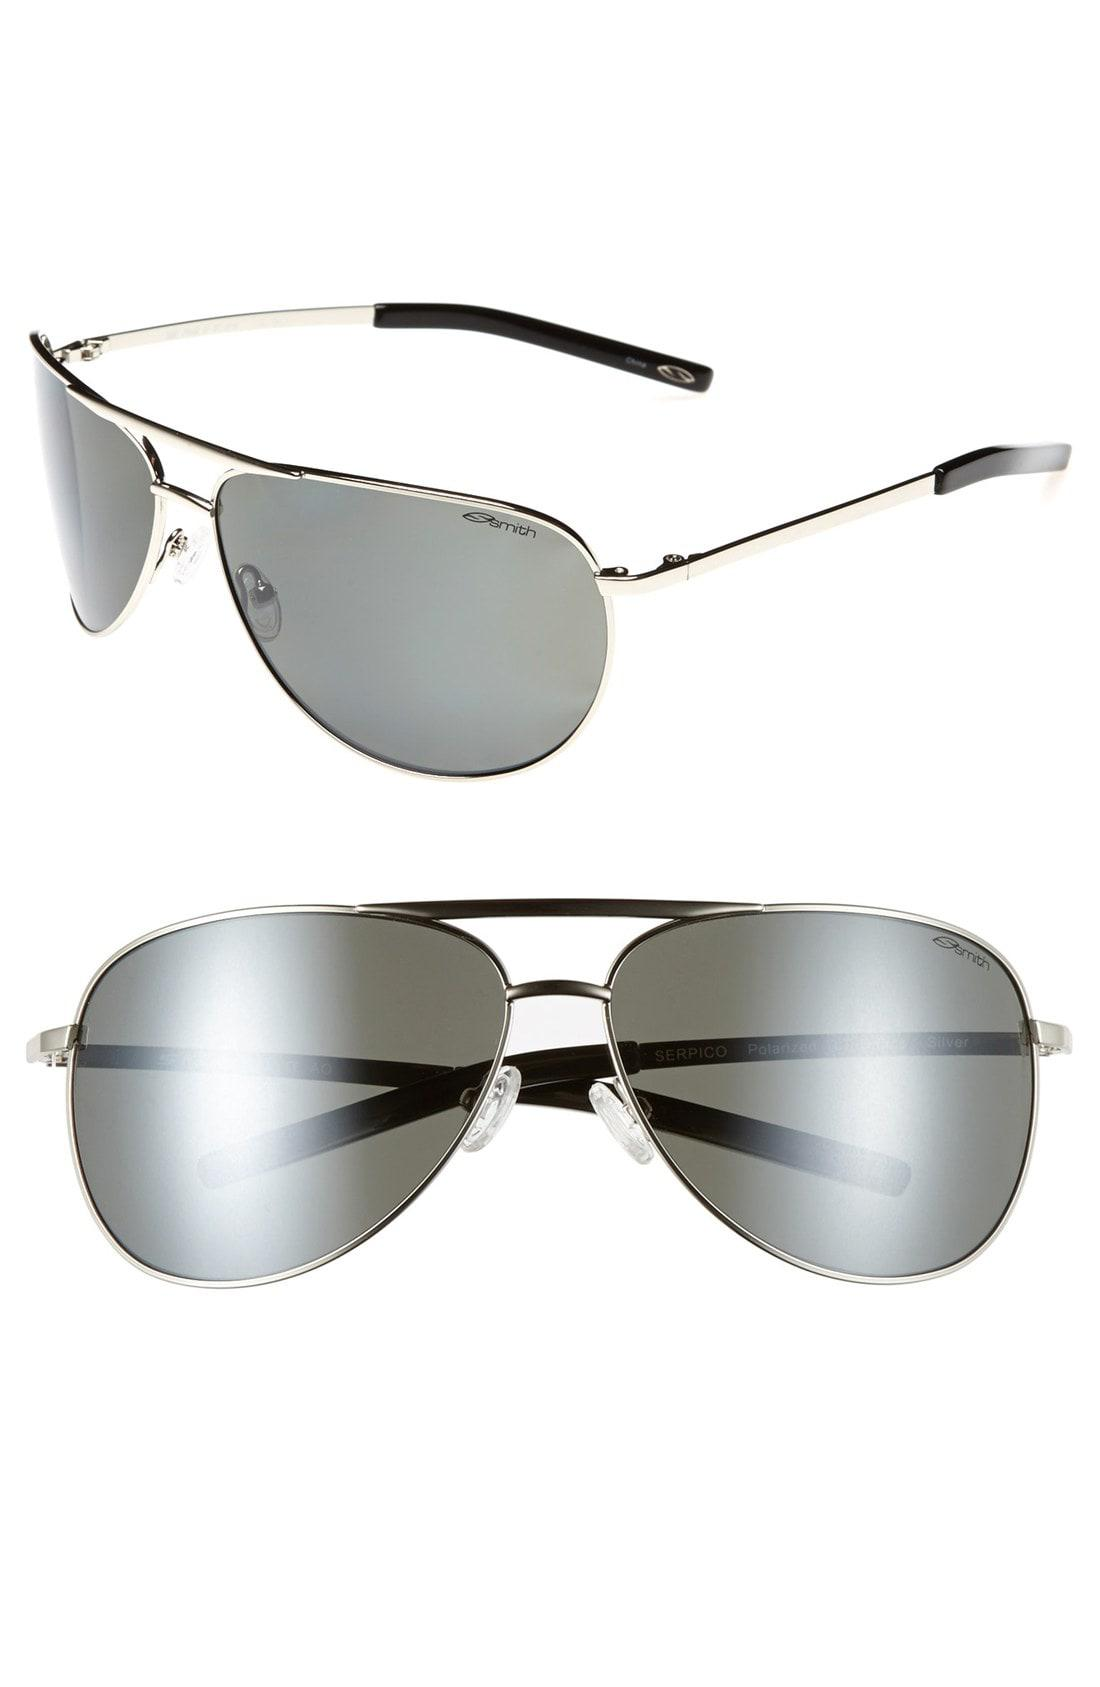 13292f649a Smith - Metallic Serpico 65mm Polarized Aviator Sunglasses - Lyst. View  fullscreen